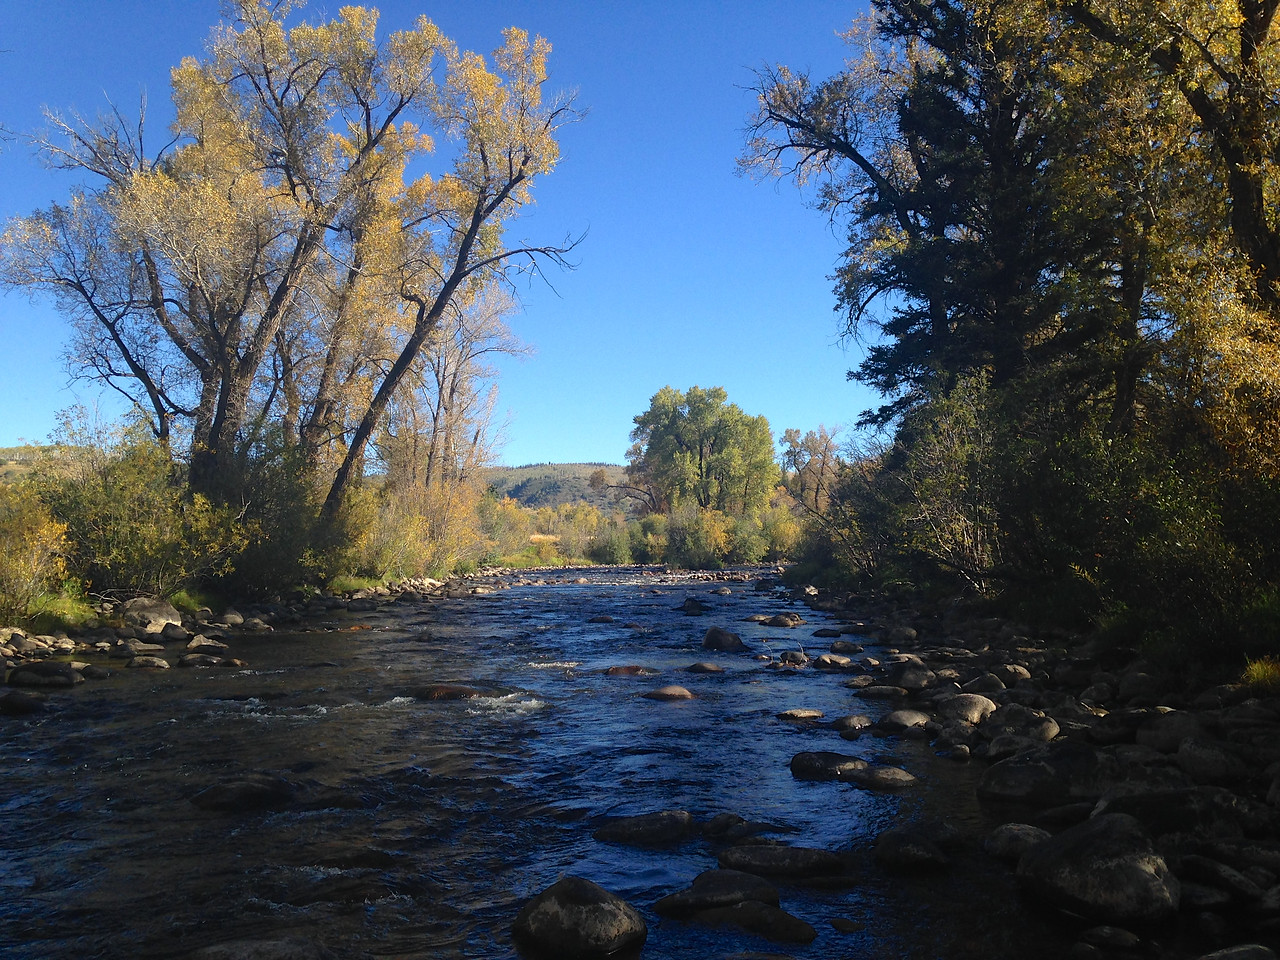 Elk River scene north of Steamboat Springs